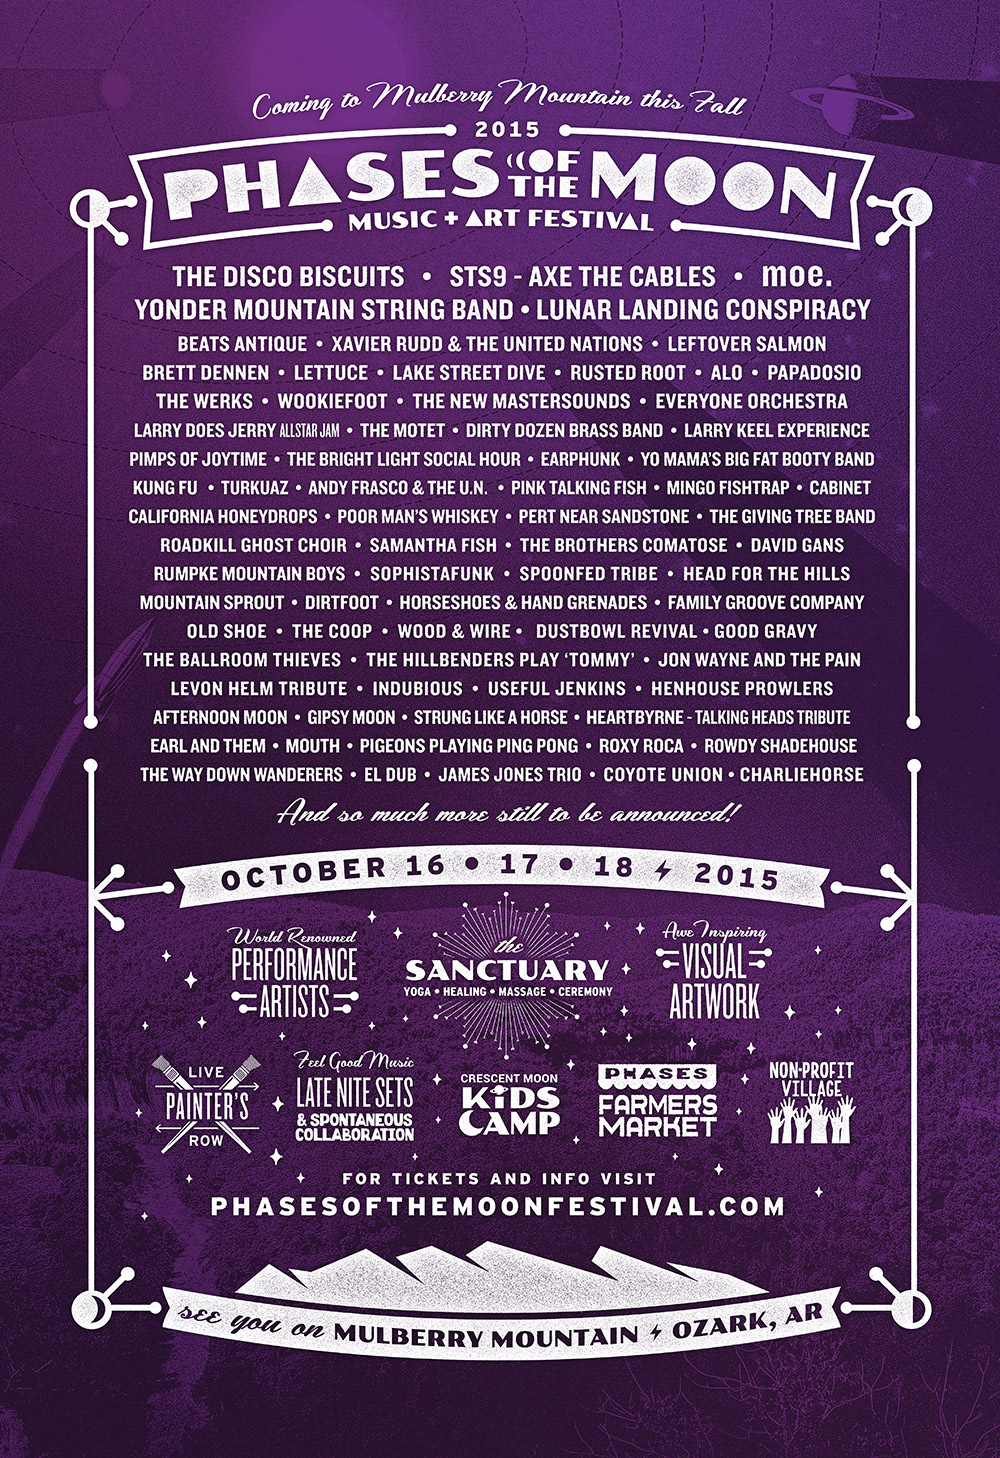 Phases of the Moon Music & Arts Festival Announces Initial Lineup